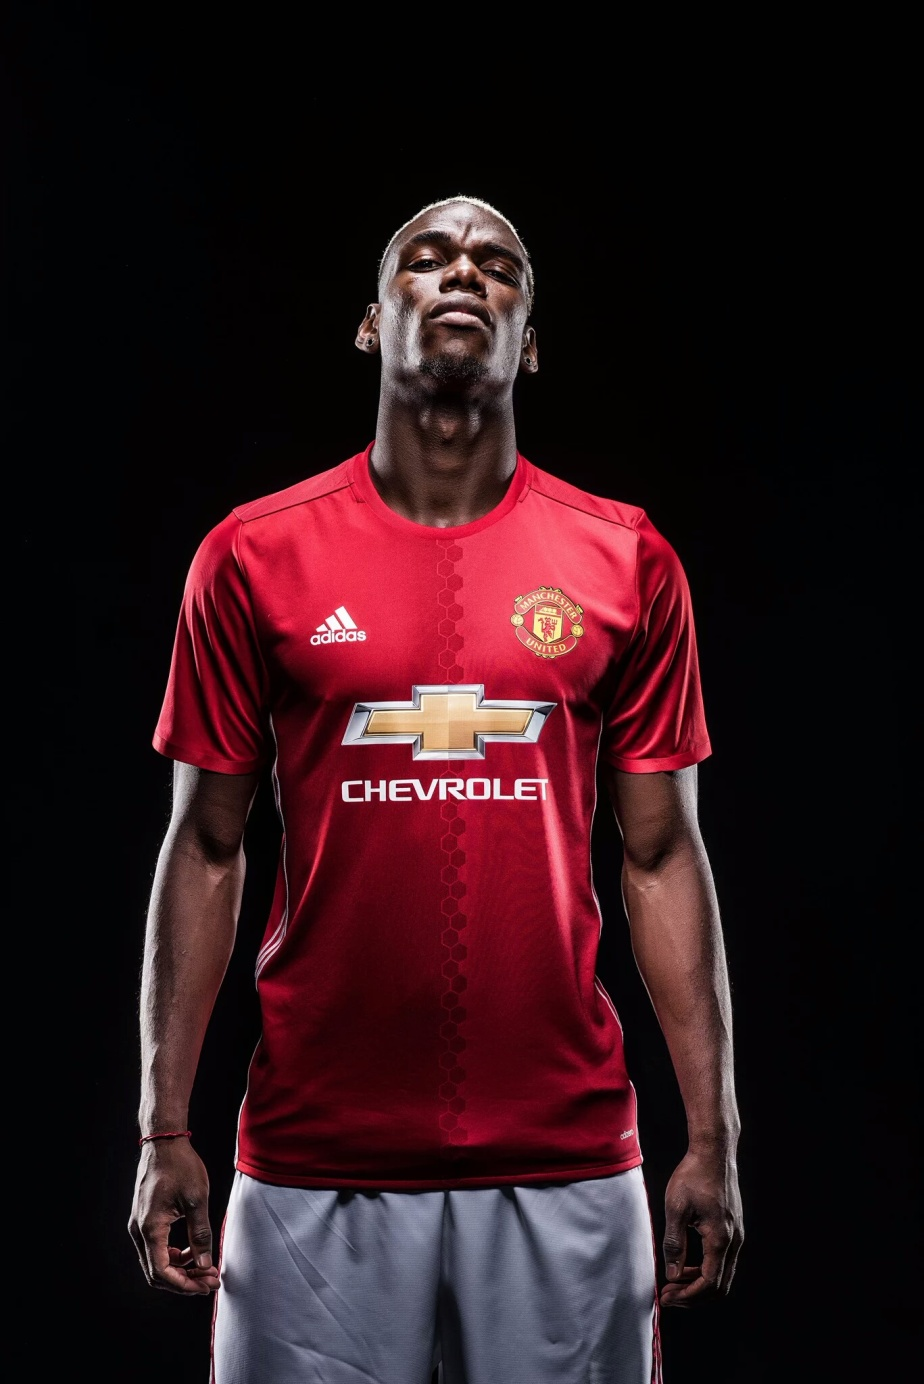 BREAKING: Paul Pogba is back at ManchesterUnited